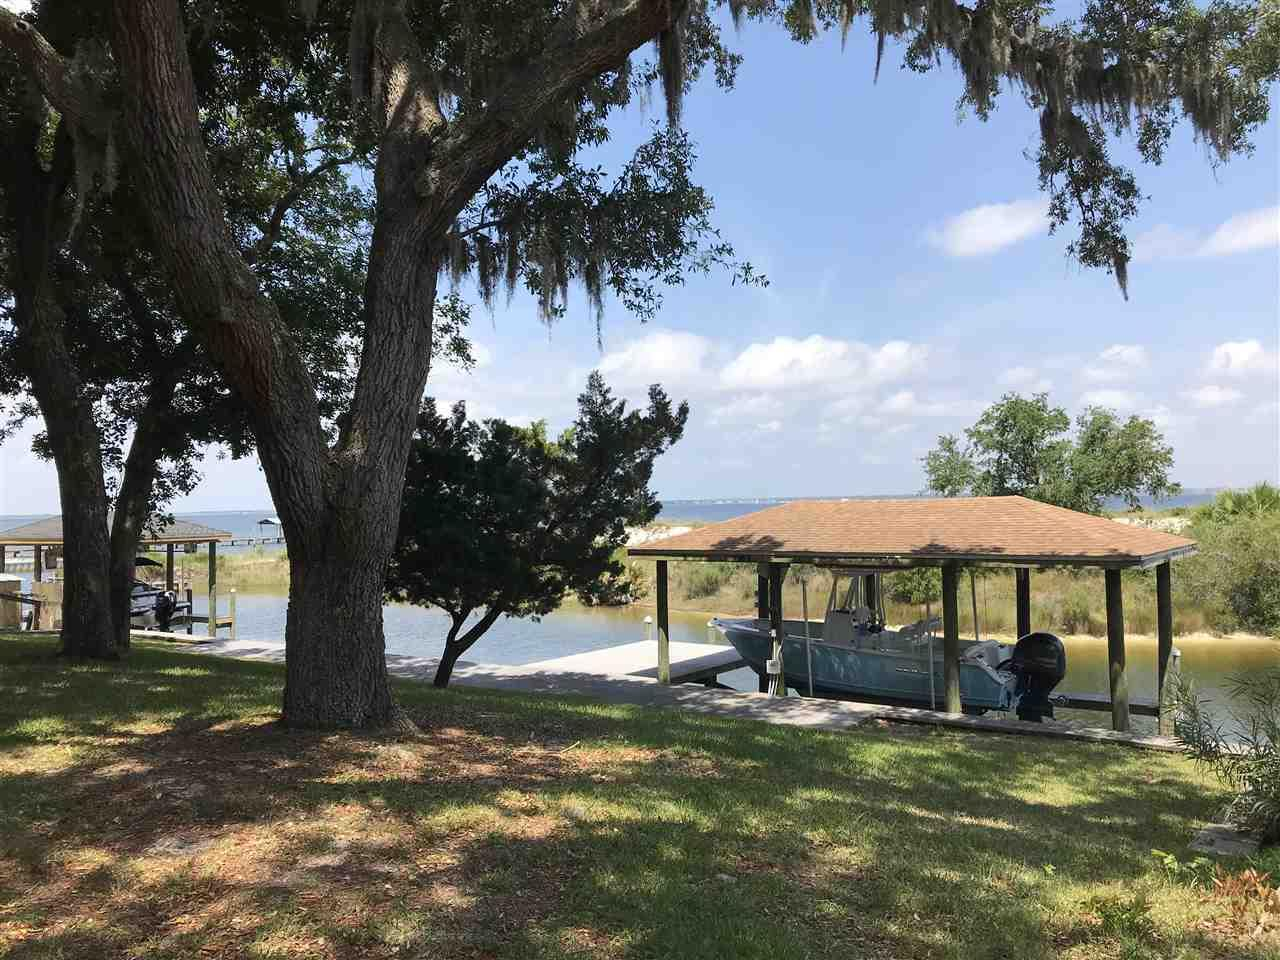 402 Navy Cove Blvd, Gulf Breeze, FL 32561